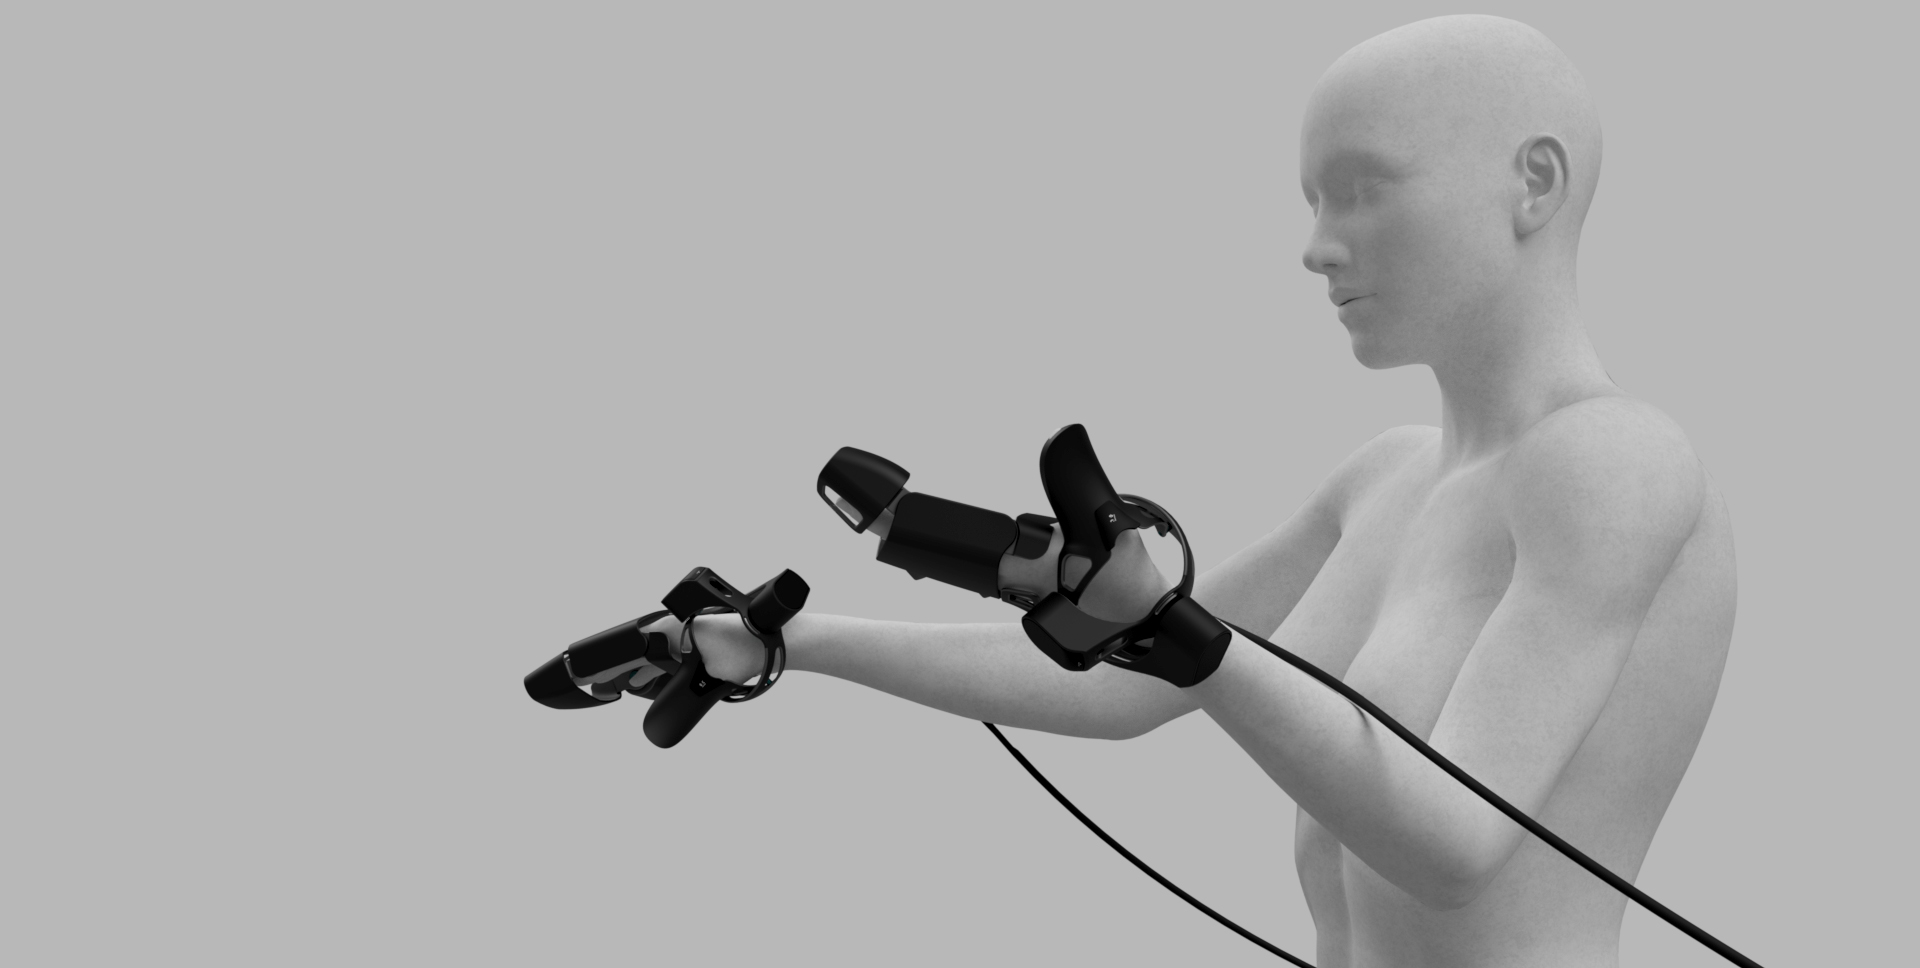 6127e6557ef1 EXOS Haptic VR Exoskeleton Glove Aims to Deliver Practical Touch Feedback